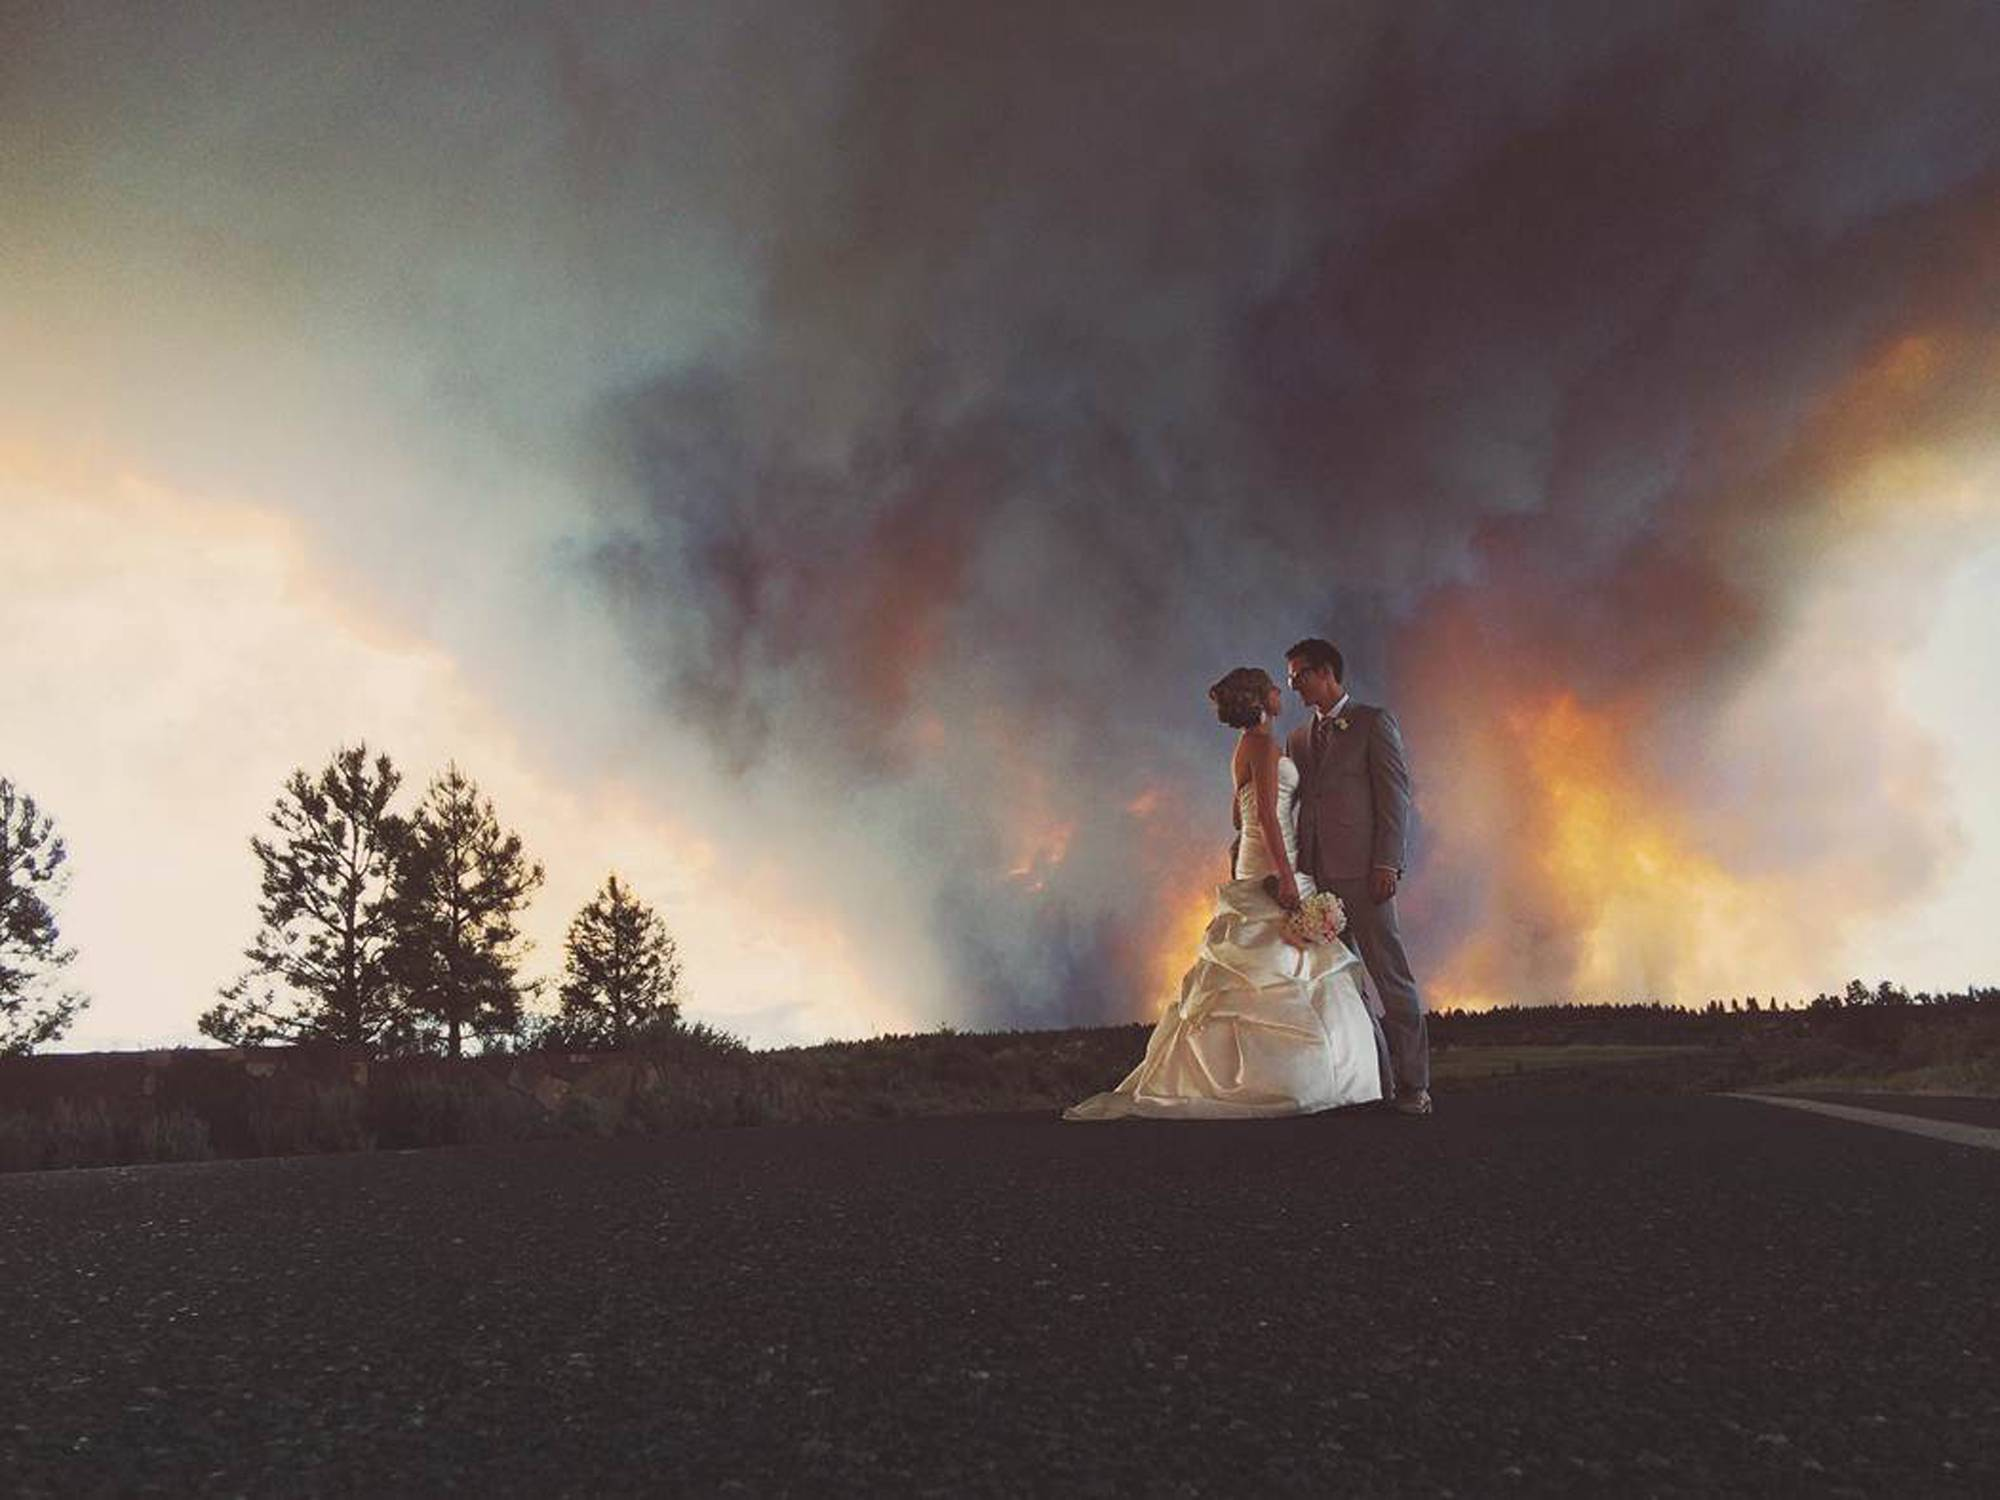 Newlyweds Michael Wolber and April Hartley pose for a picture near Bend, Ore., as a wildfire burns in the background. Because of the approaching fire, the minister conducted an abbreviated ceremony and the wedding party was evacuated to a downtown Bend park for the reception.